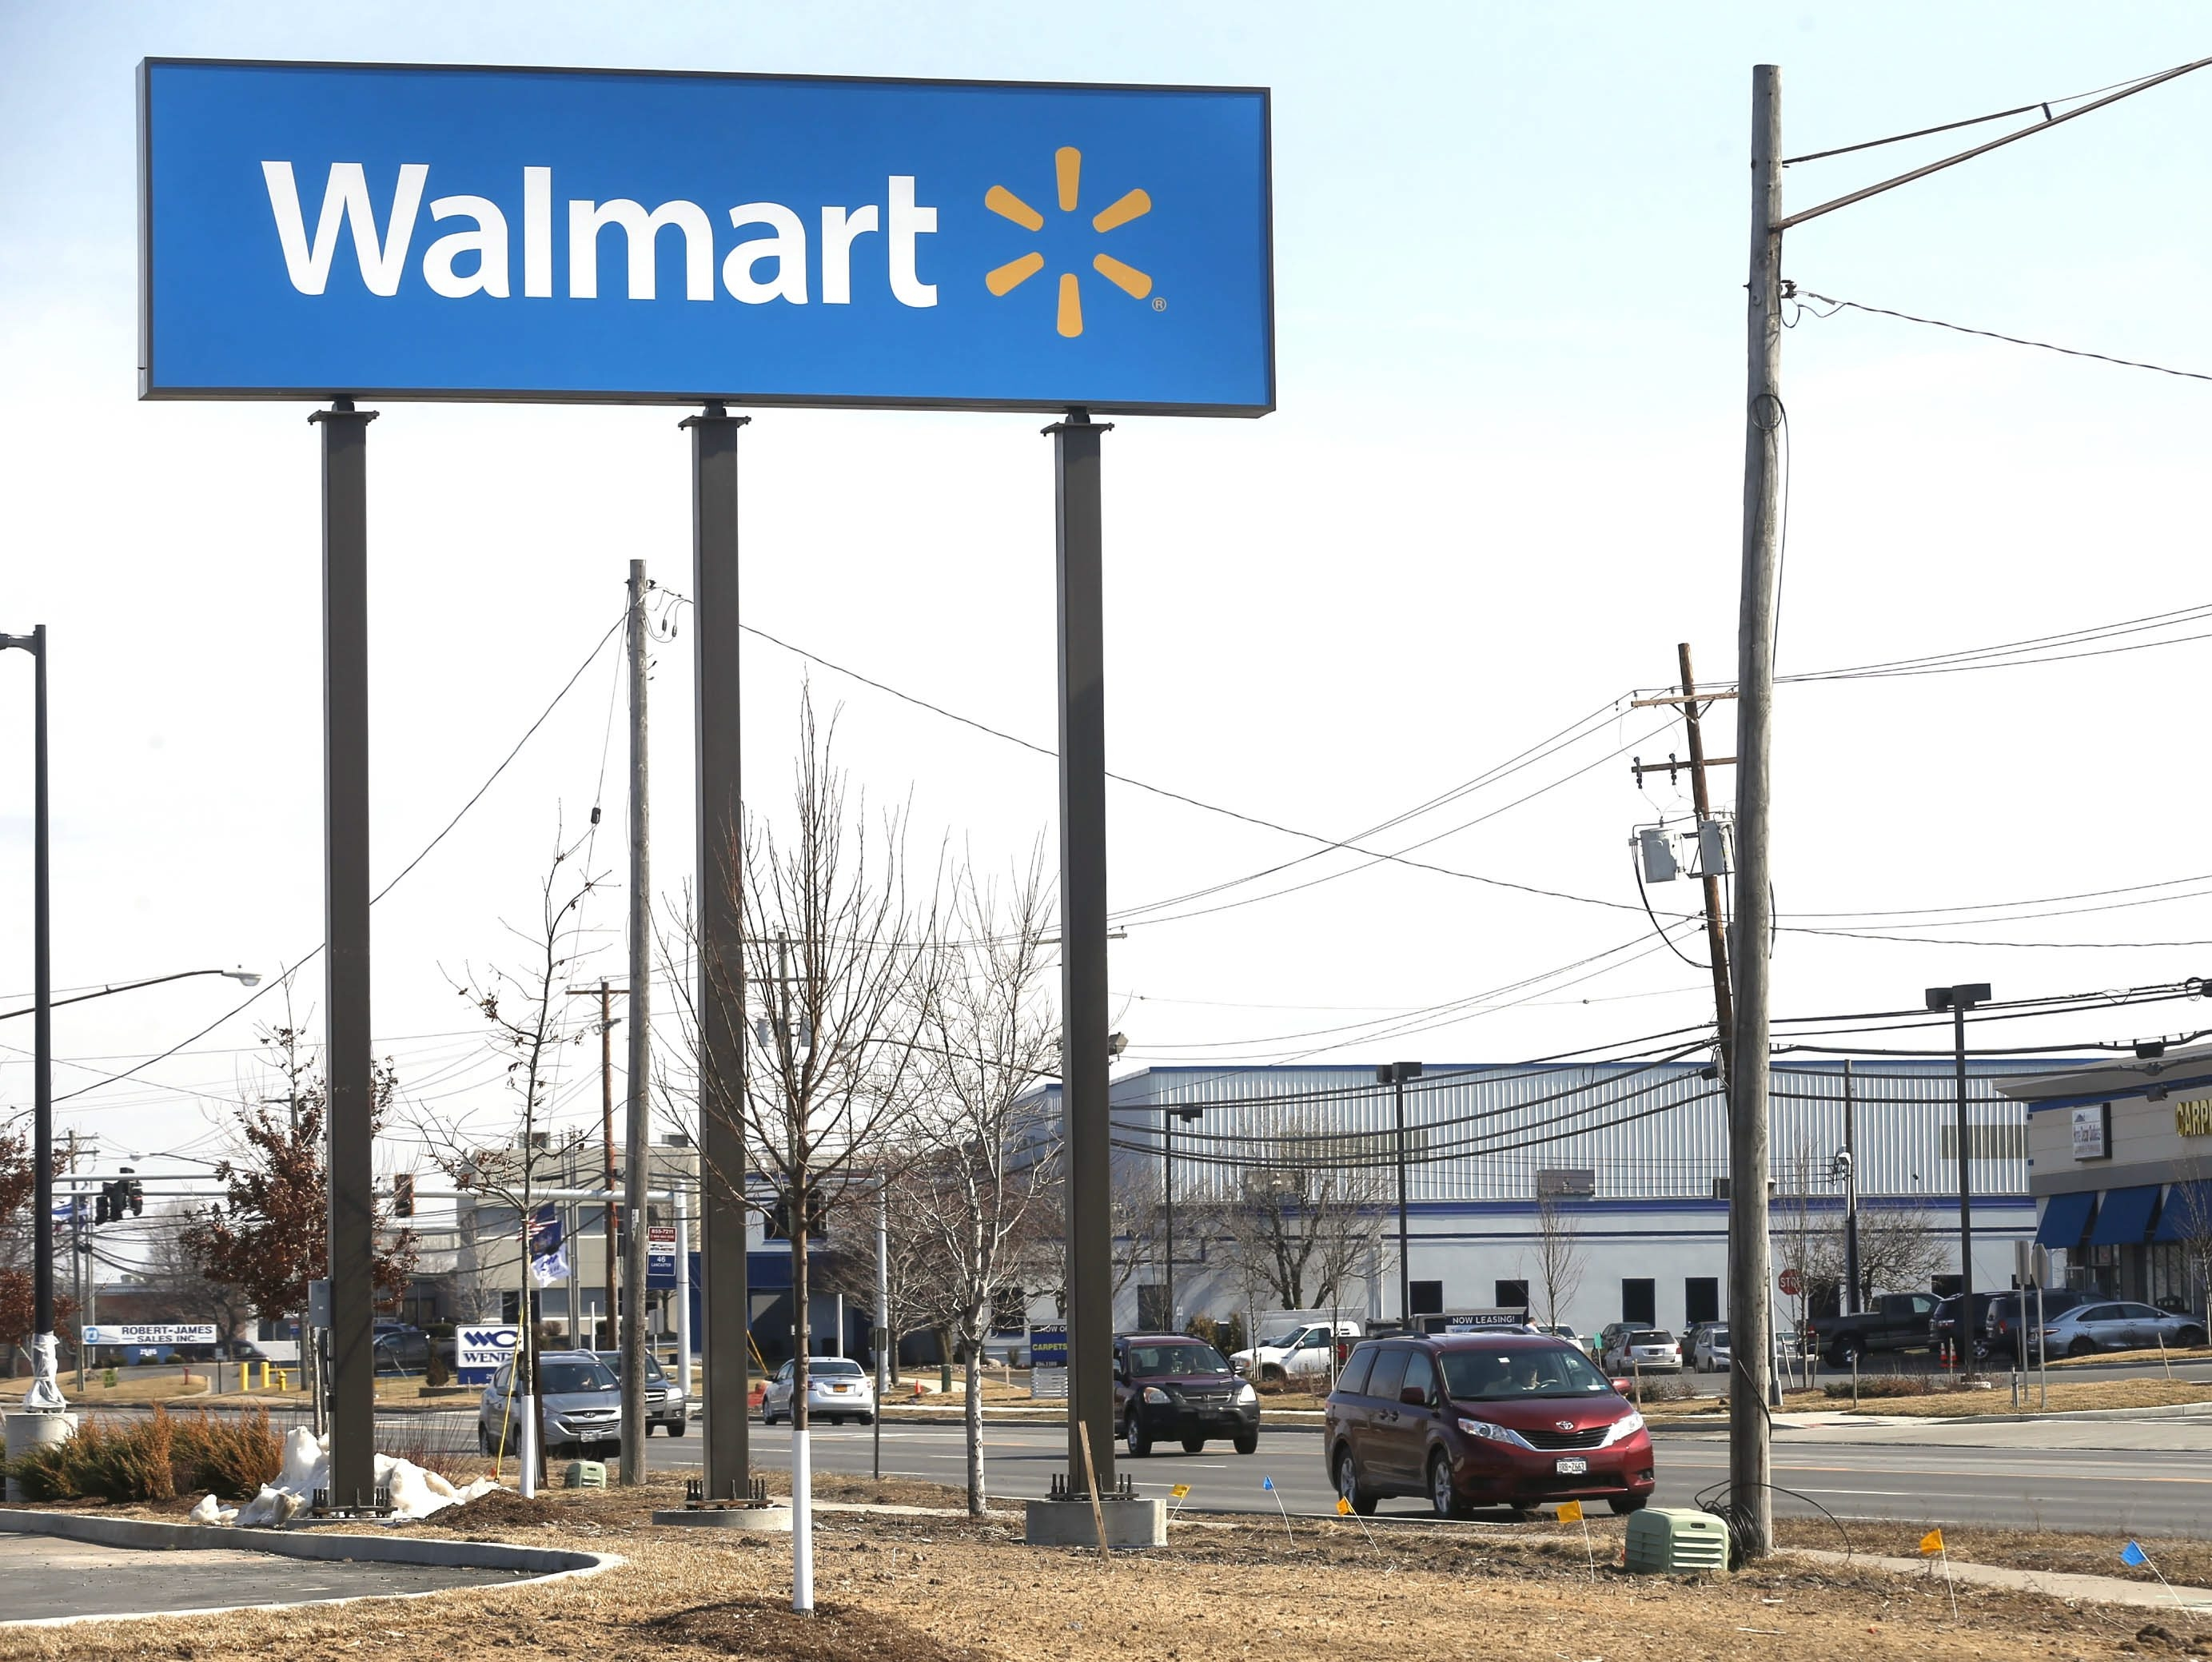 Walmart officials say an on-site bus stop for its new store should have been discussed in the store's planning and design stages.